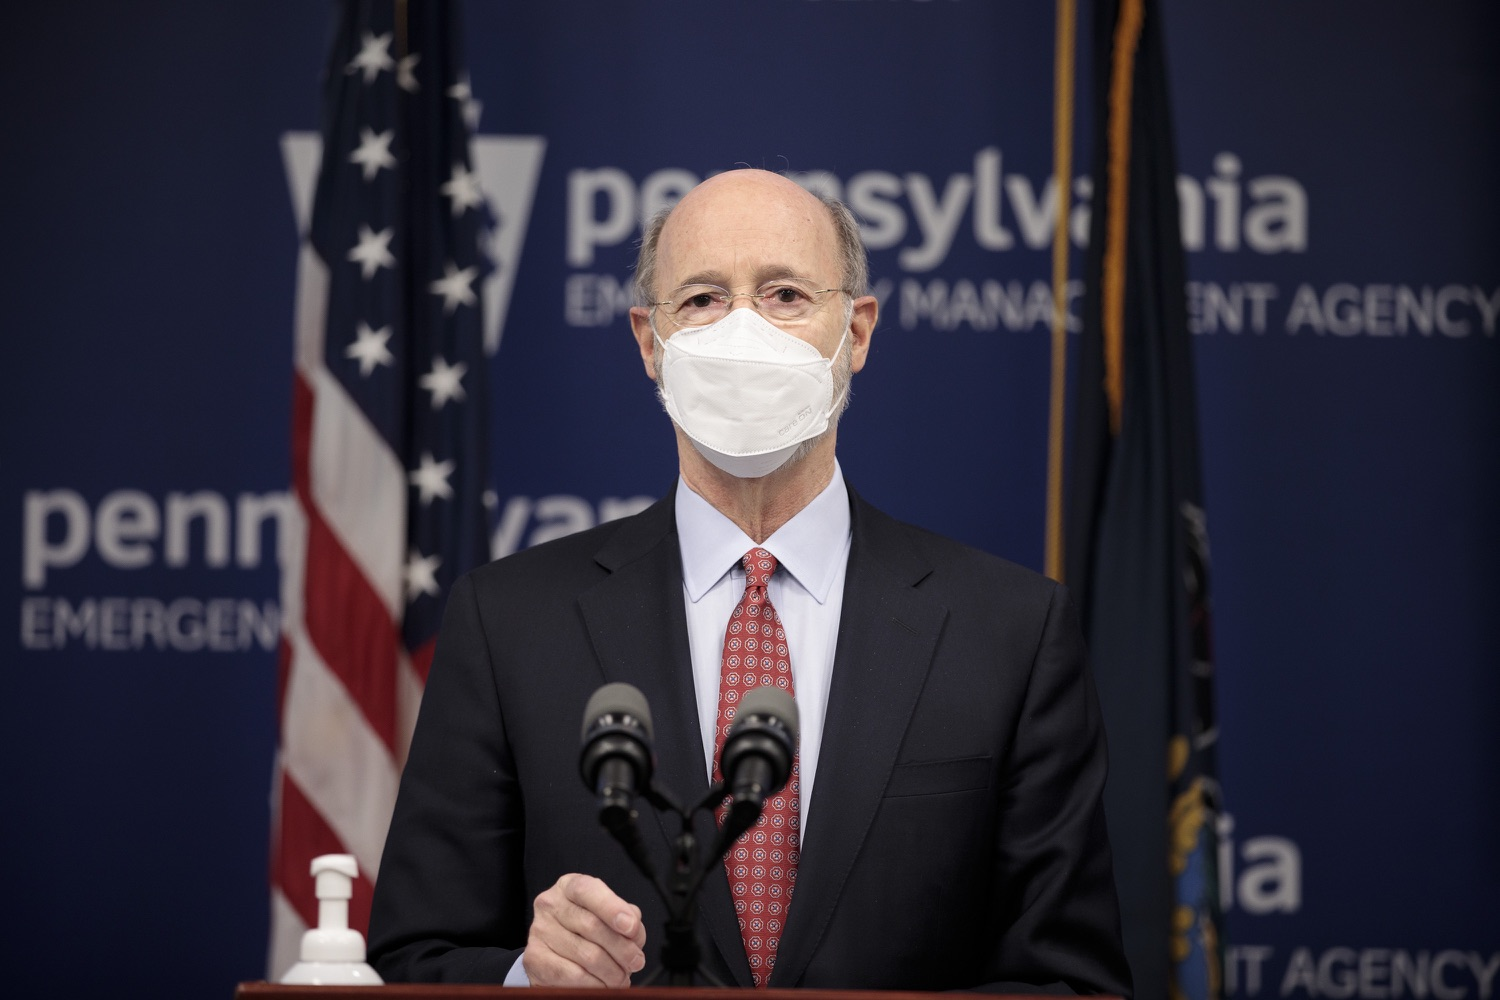 "<a href=""https://filesource.wostreaming.net/commonwealthofpa/photo/18535_gov_nellie_bly_dz_02.jpg"" target=""_blank"">⇣ Download Photo<br></a>Pennsylvania Governor Tom Wolf speaking at the press conference.  Governor Tom Wolf wants to bet on 44,000 students to help them earn a college degree while graduating with less debt and building successful lives in Pennsylvania. Today, the governor held a press conference to discuss how his historic Nellie Bly Scholarship Program would provide need-based financial assistance for students at 14 universities in the states system. Harrisburg, PA  February 17, 2021"